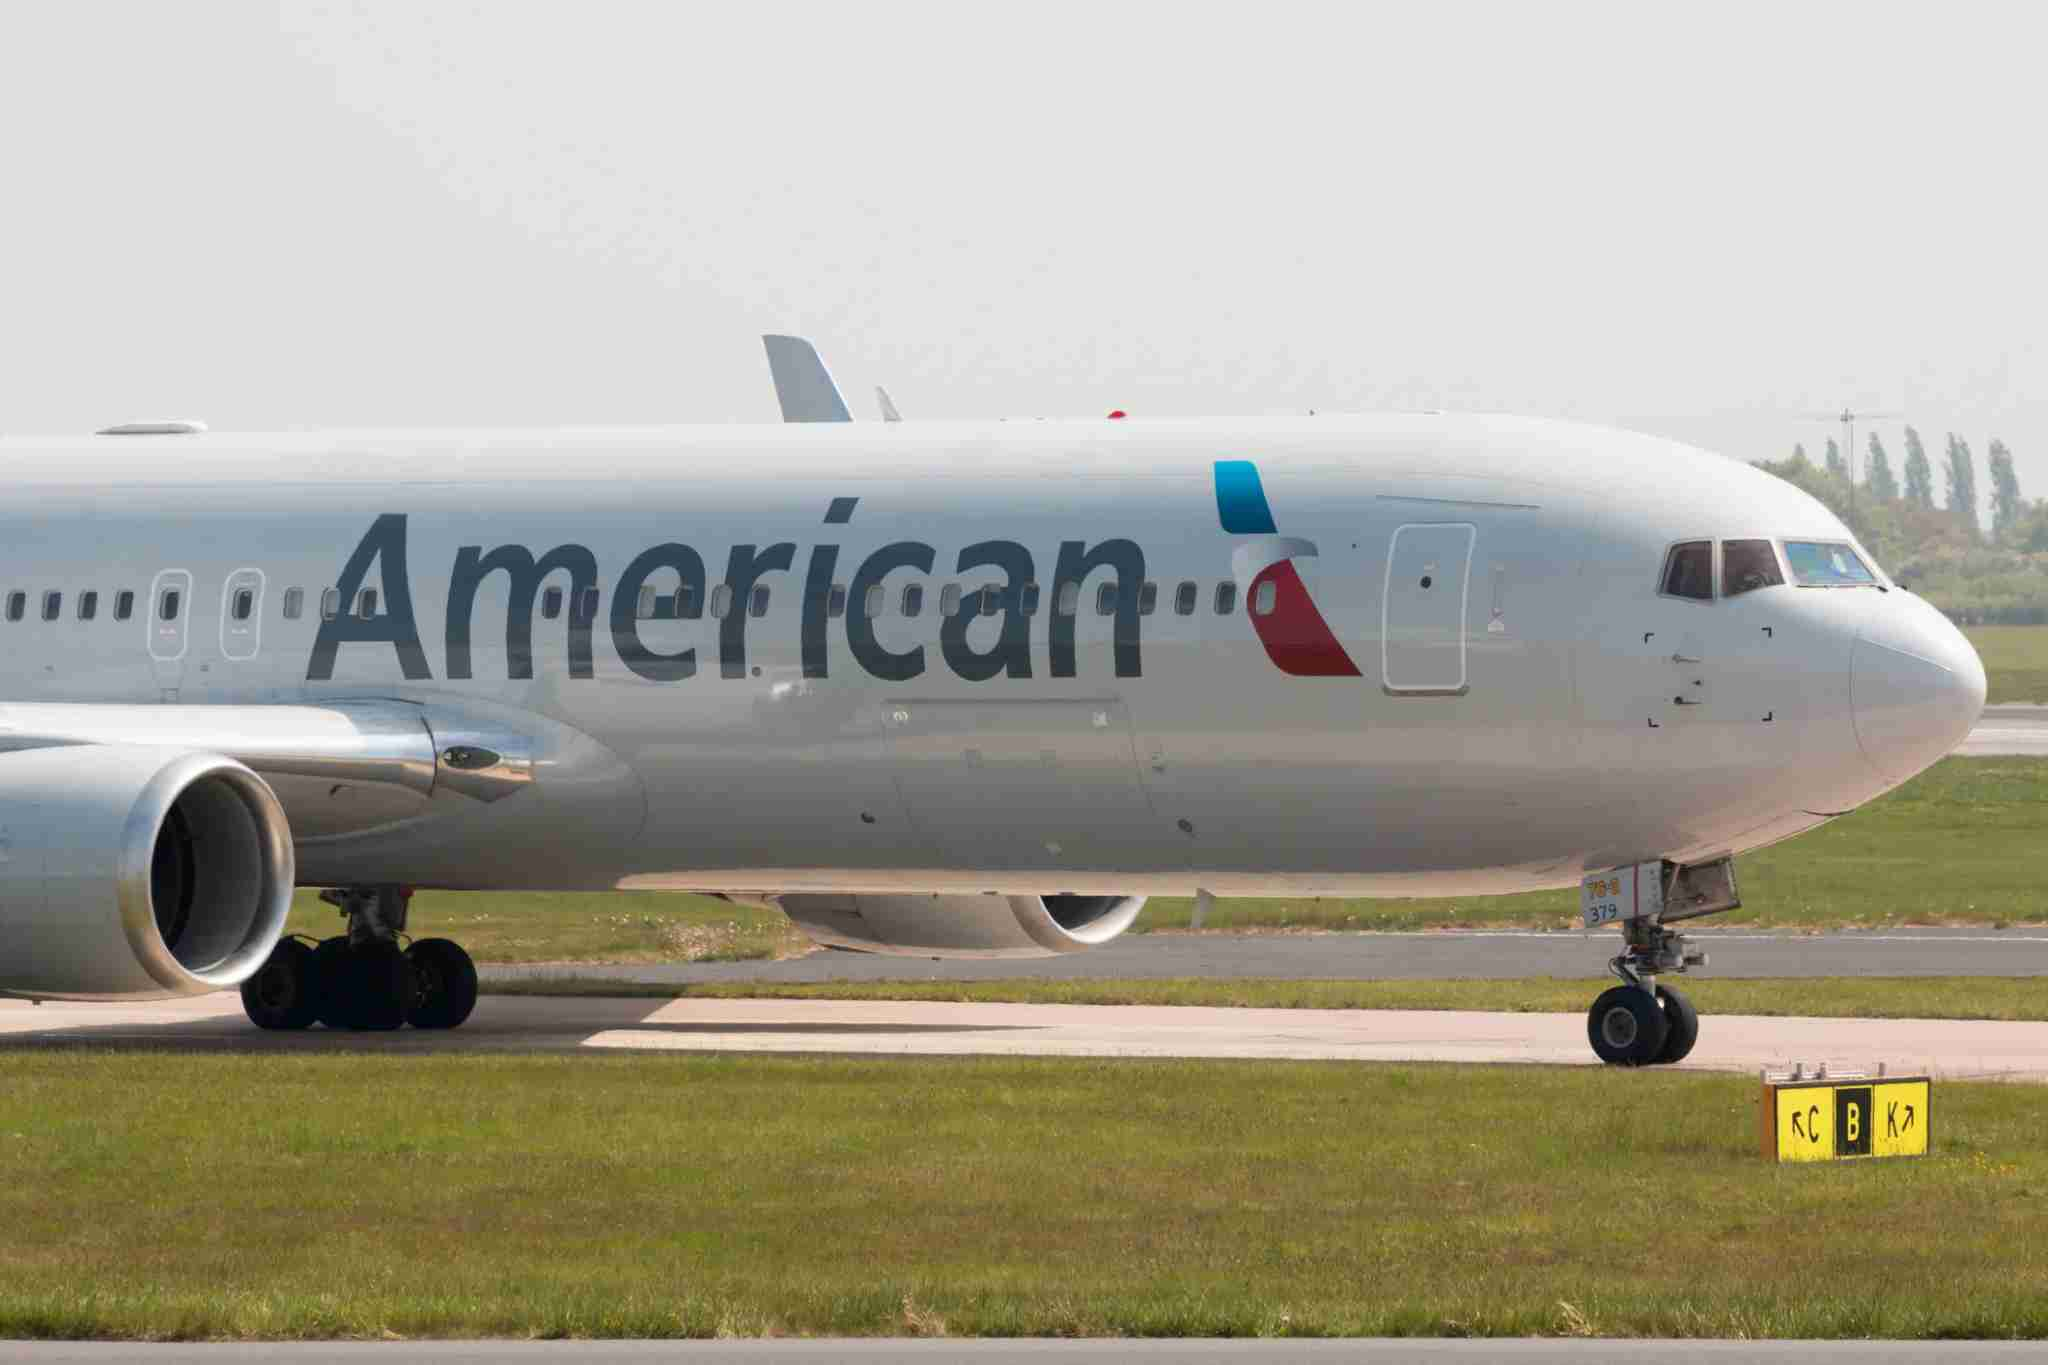 Manchester, United Kingdom - May 11, 2017: American Airlines Boeing 767-300 wide-body passenger plane (N379AA) taxiing on Manchester International Airport tarmac. (Photo by Juha Remes / Getty Images).